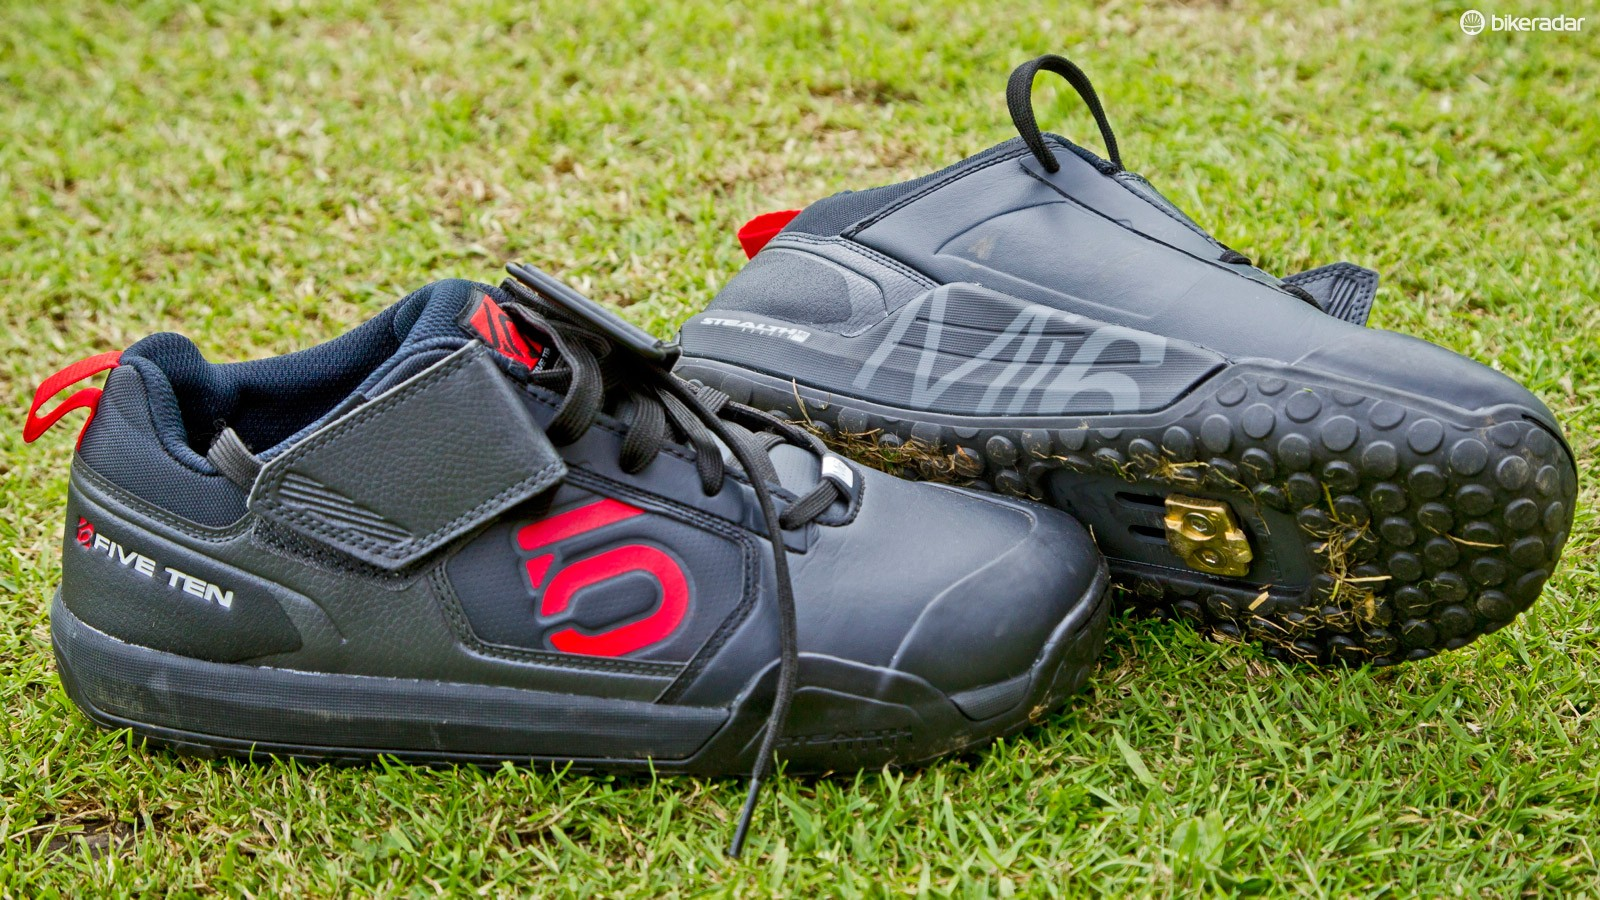 Five Ten SPD shoe: Cedric Gracia was rocking some brand new Five Ten Impact VXi Clipless shoes, and they are very light indeed